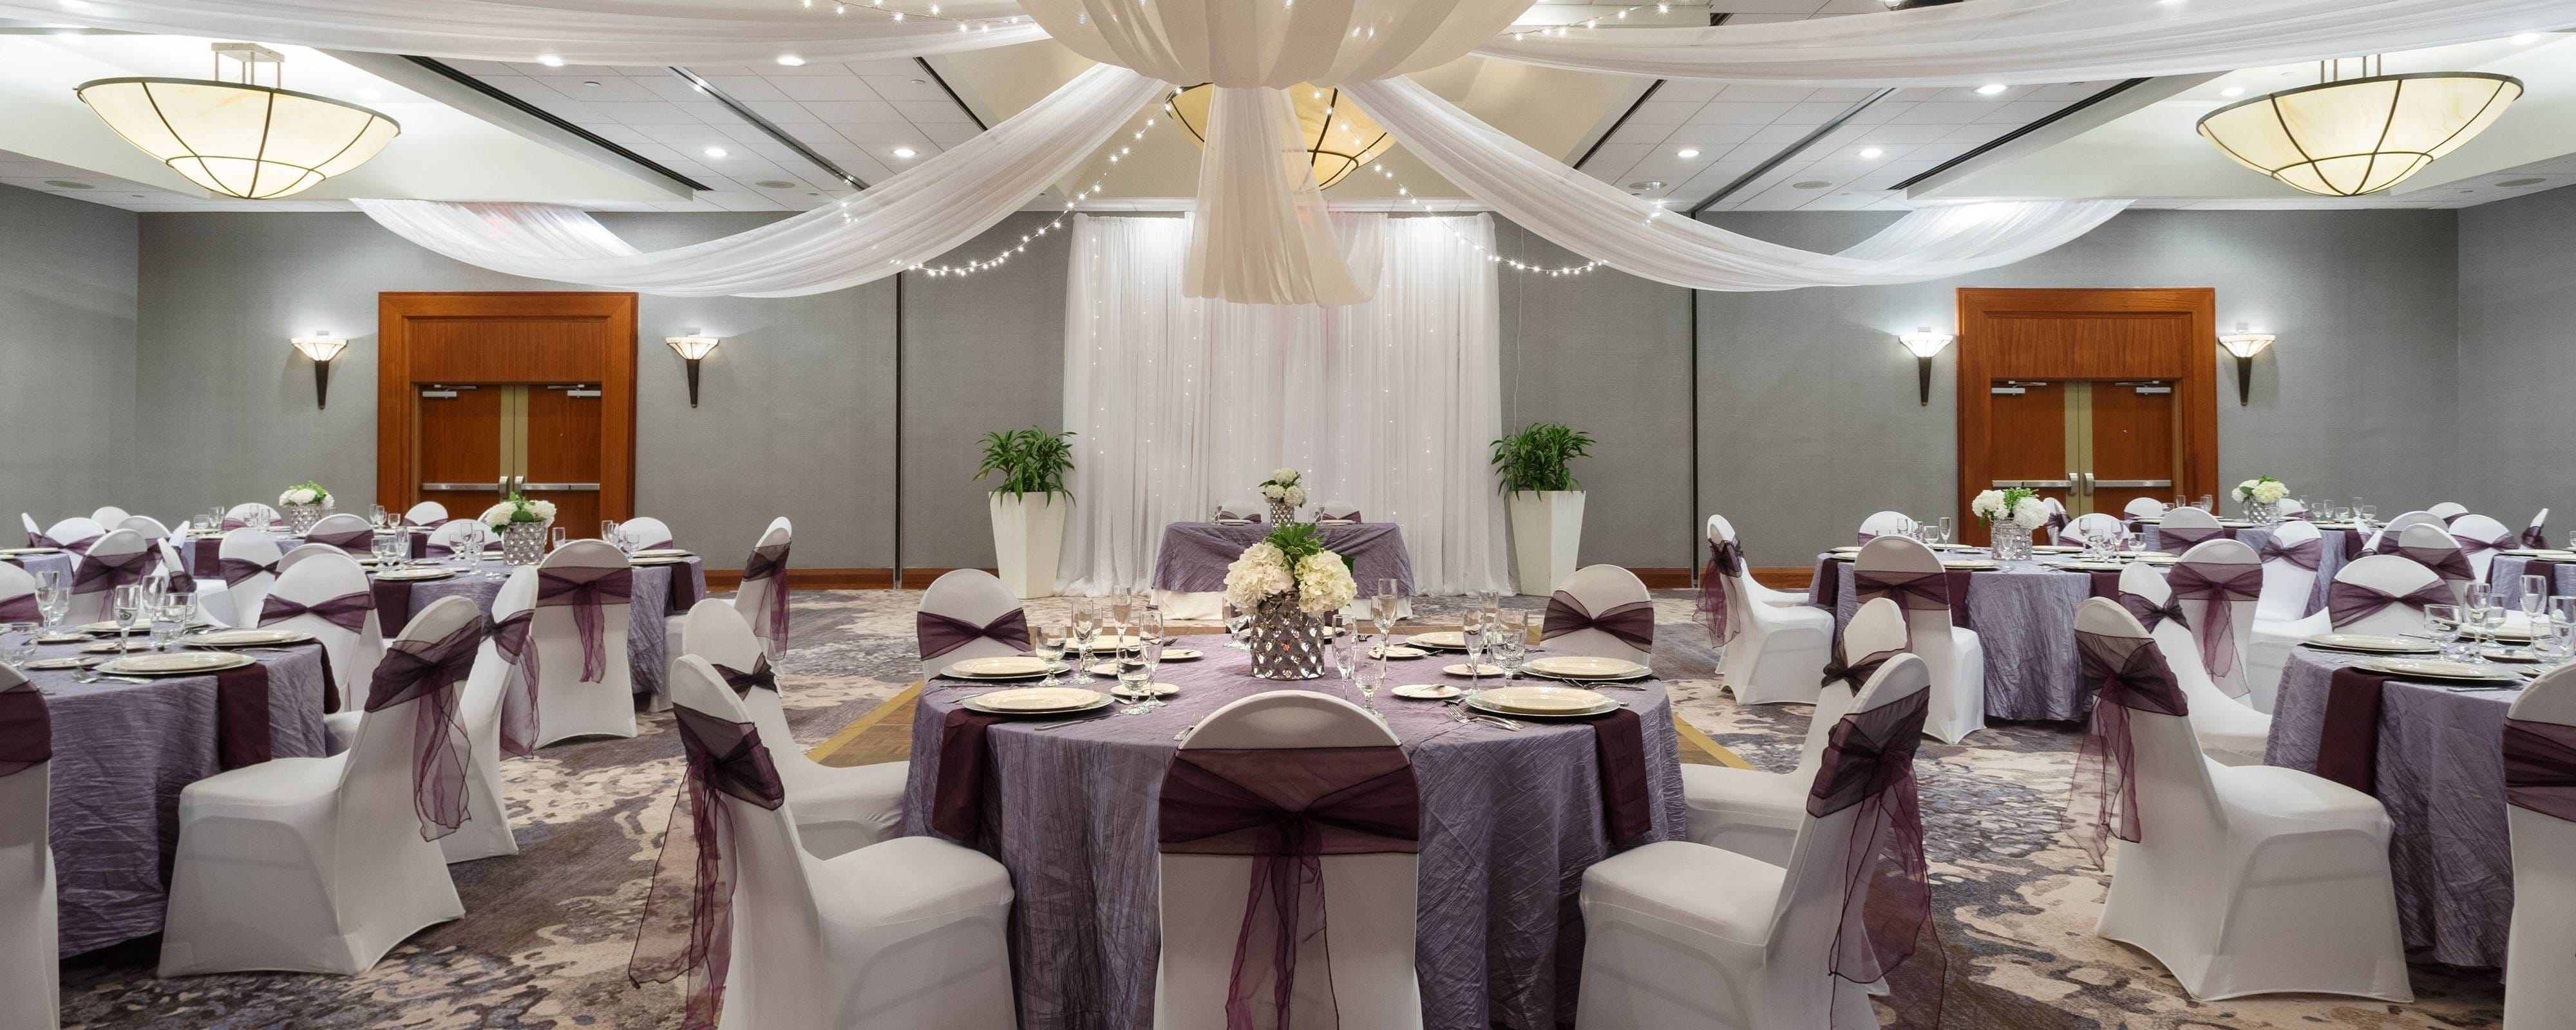 Wedding Venue In Ta Fl Clearwater Venues Marriott Suites